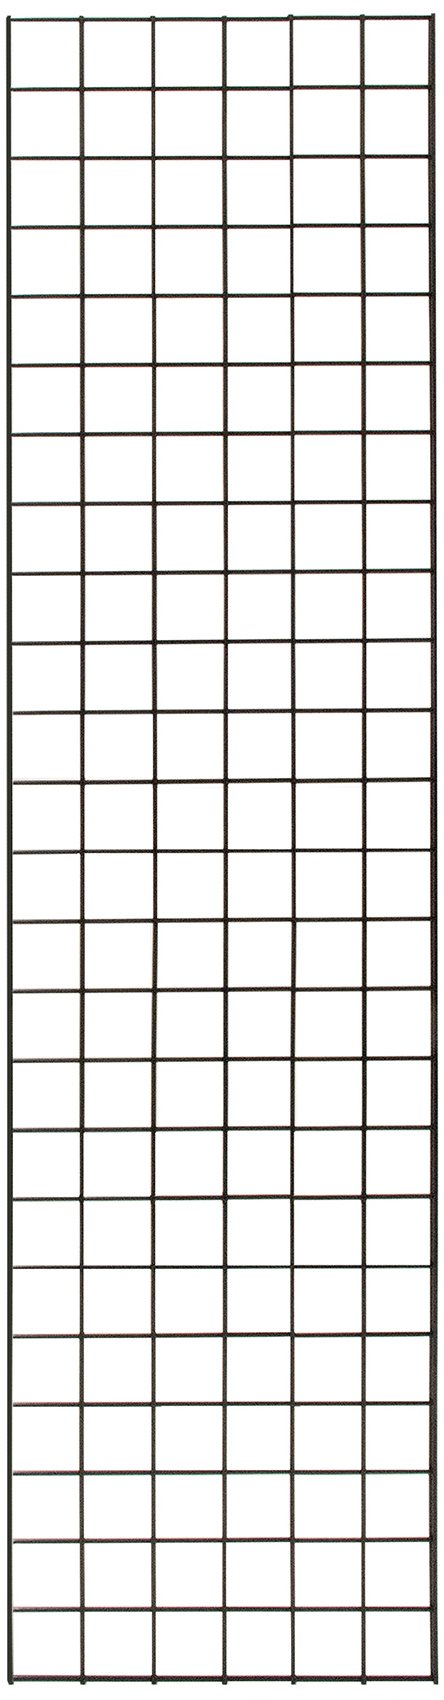 KC Store Fixtures A04240 Gridwall Panel, 18'' W x 6' H, Black (Pack of 4)